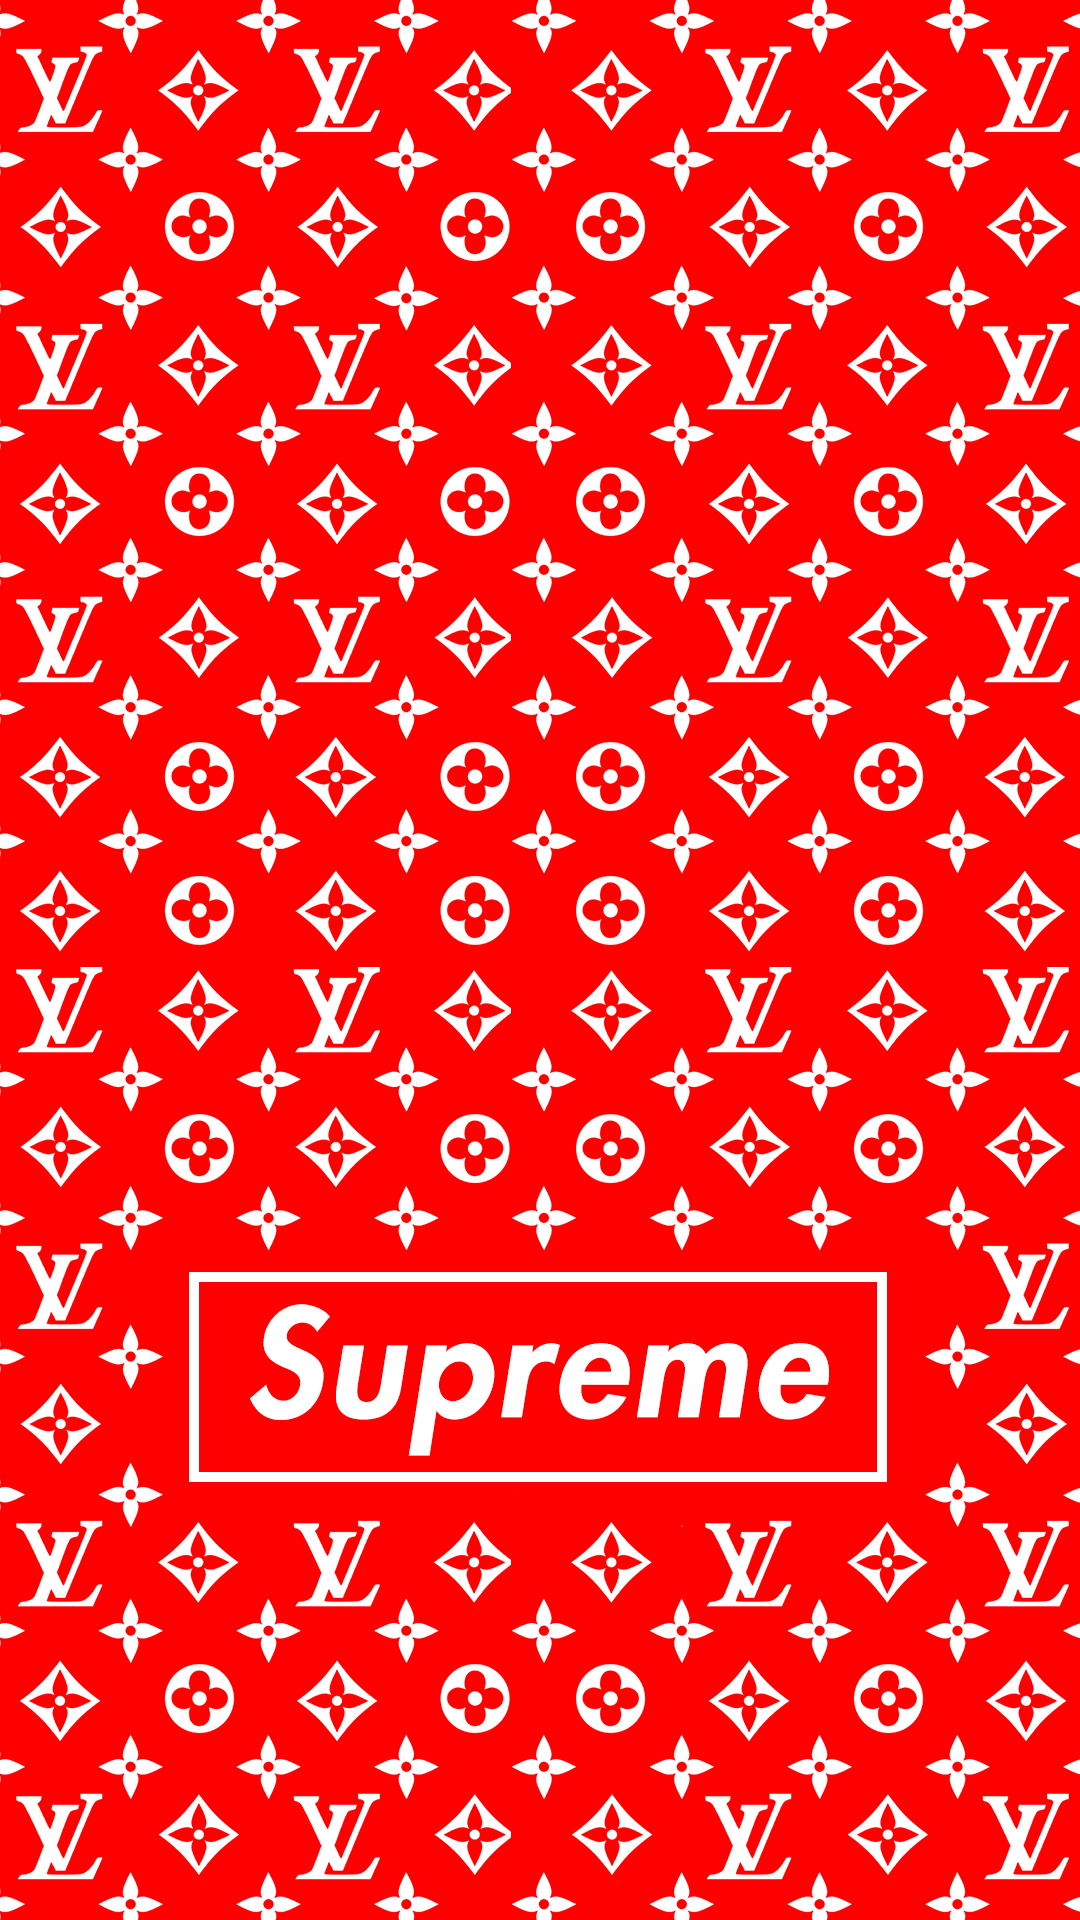 Supreme X Louis Vuitton Background Jaguar Clubs Of North